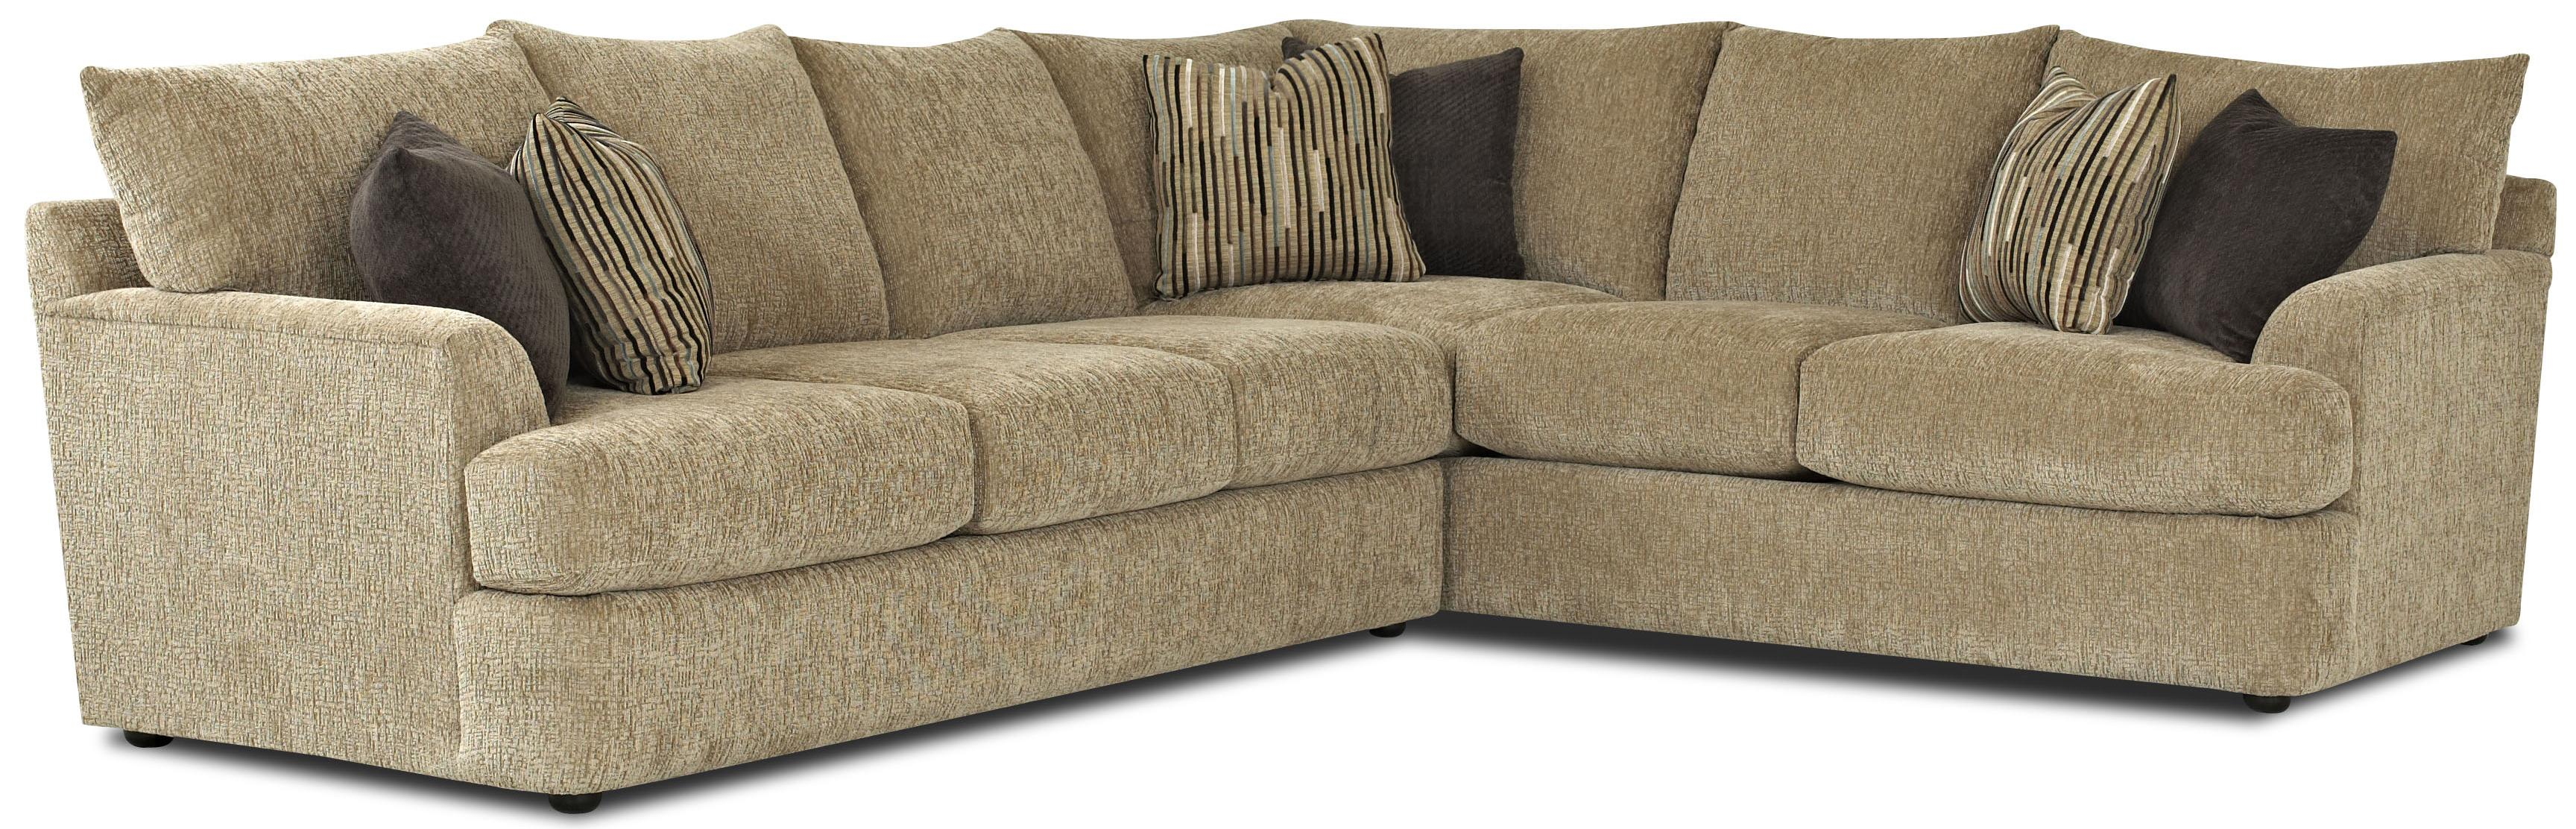 Contemporary L-Shaped Sectional Sofa : l sectional couch - Sectionals, Sofas & Couches